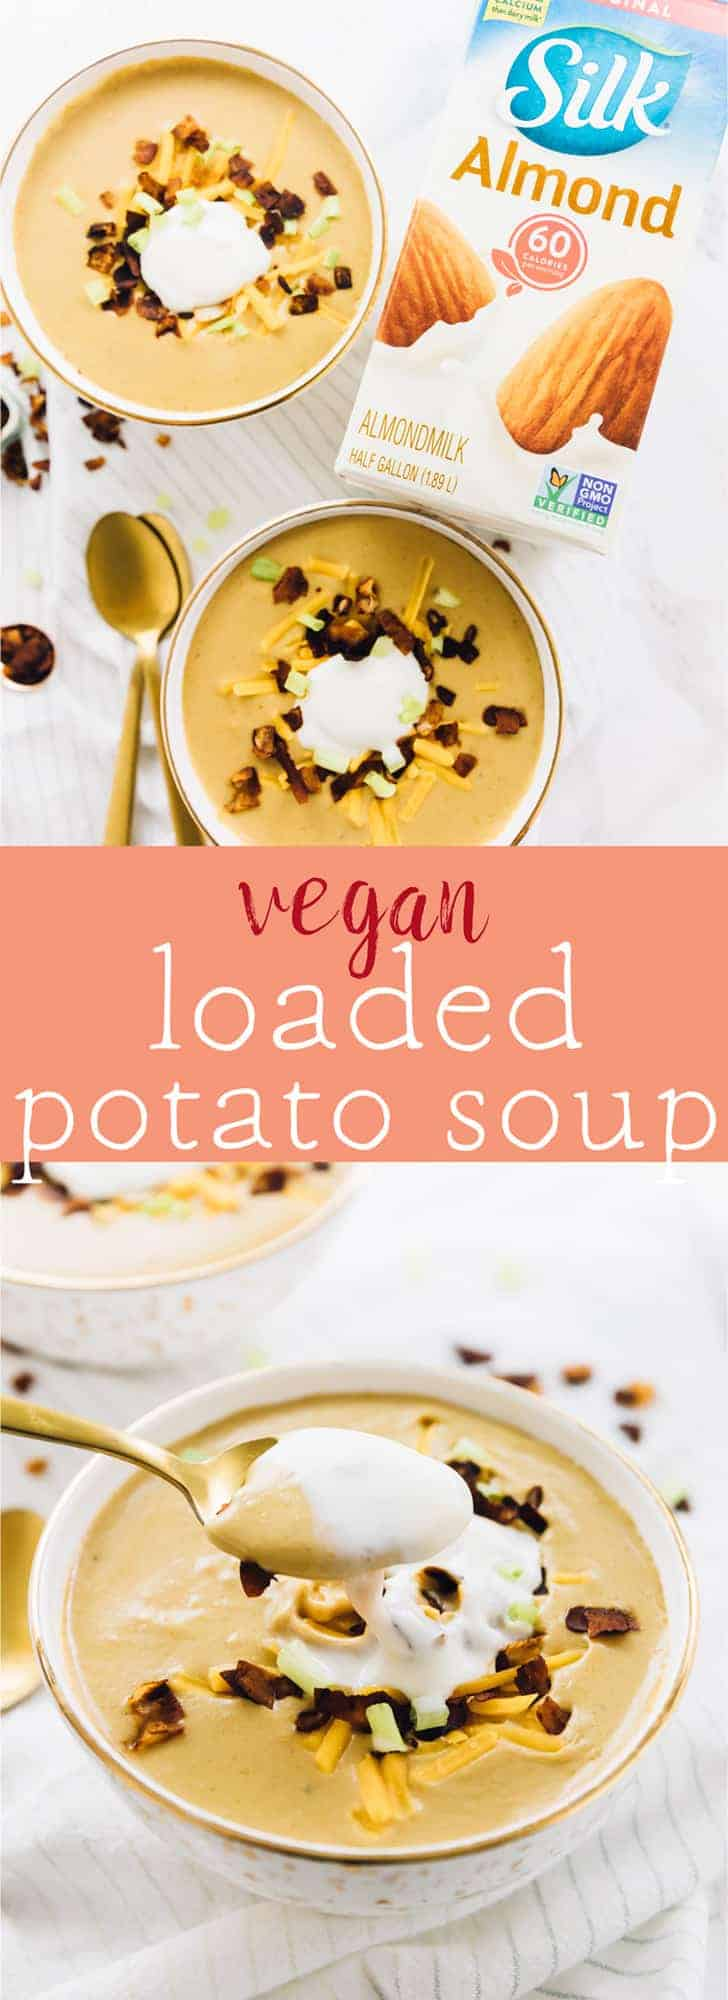 This Vegan Loaded Potato Soup will give you all the comfort! It's made in one pot, blended to perfection and topped with coconut bacon! via https://jessicainthekitchen.com